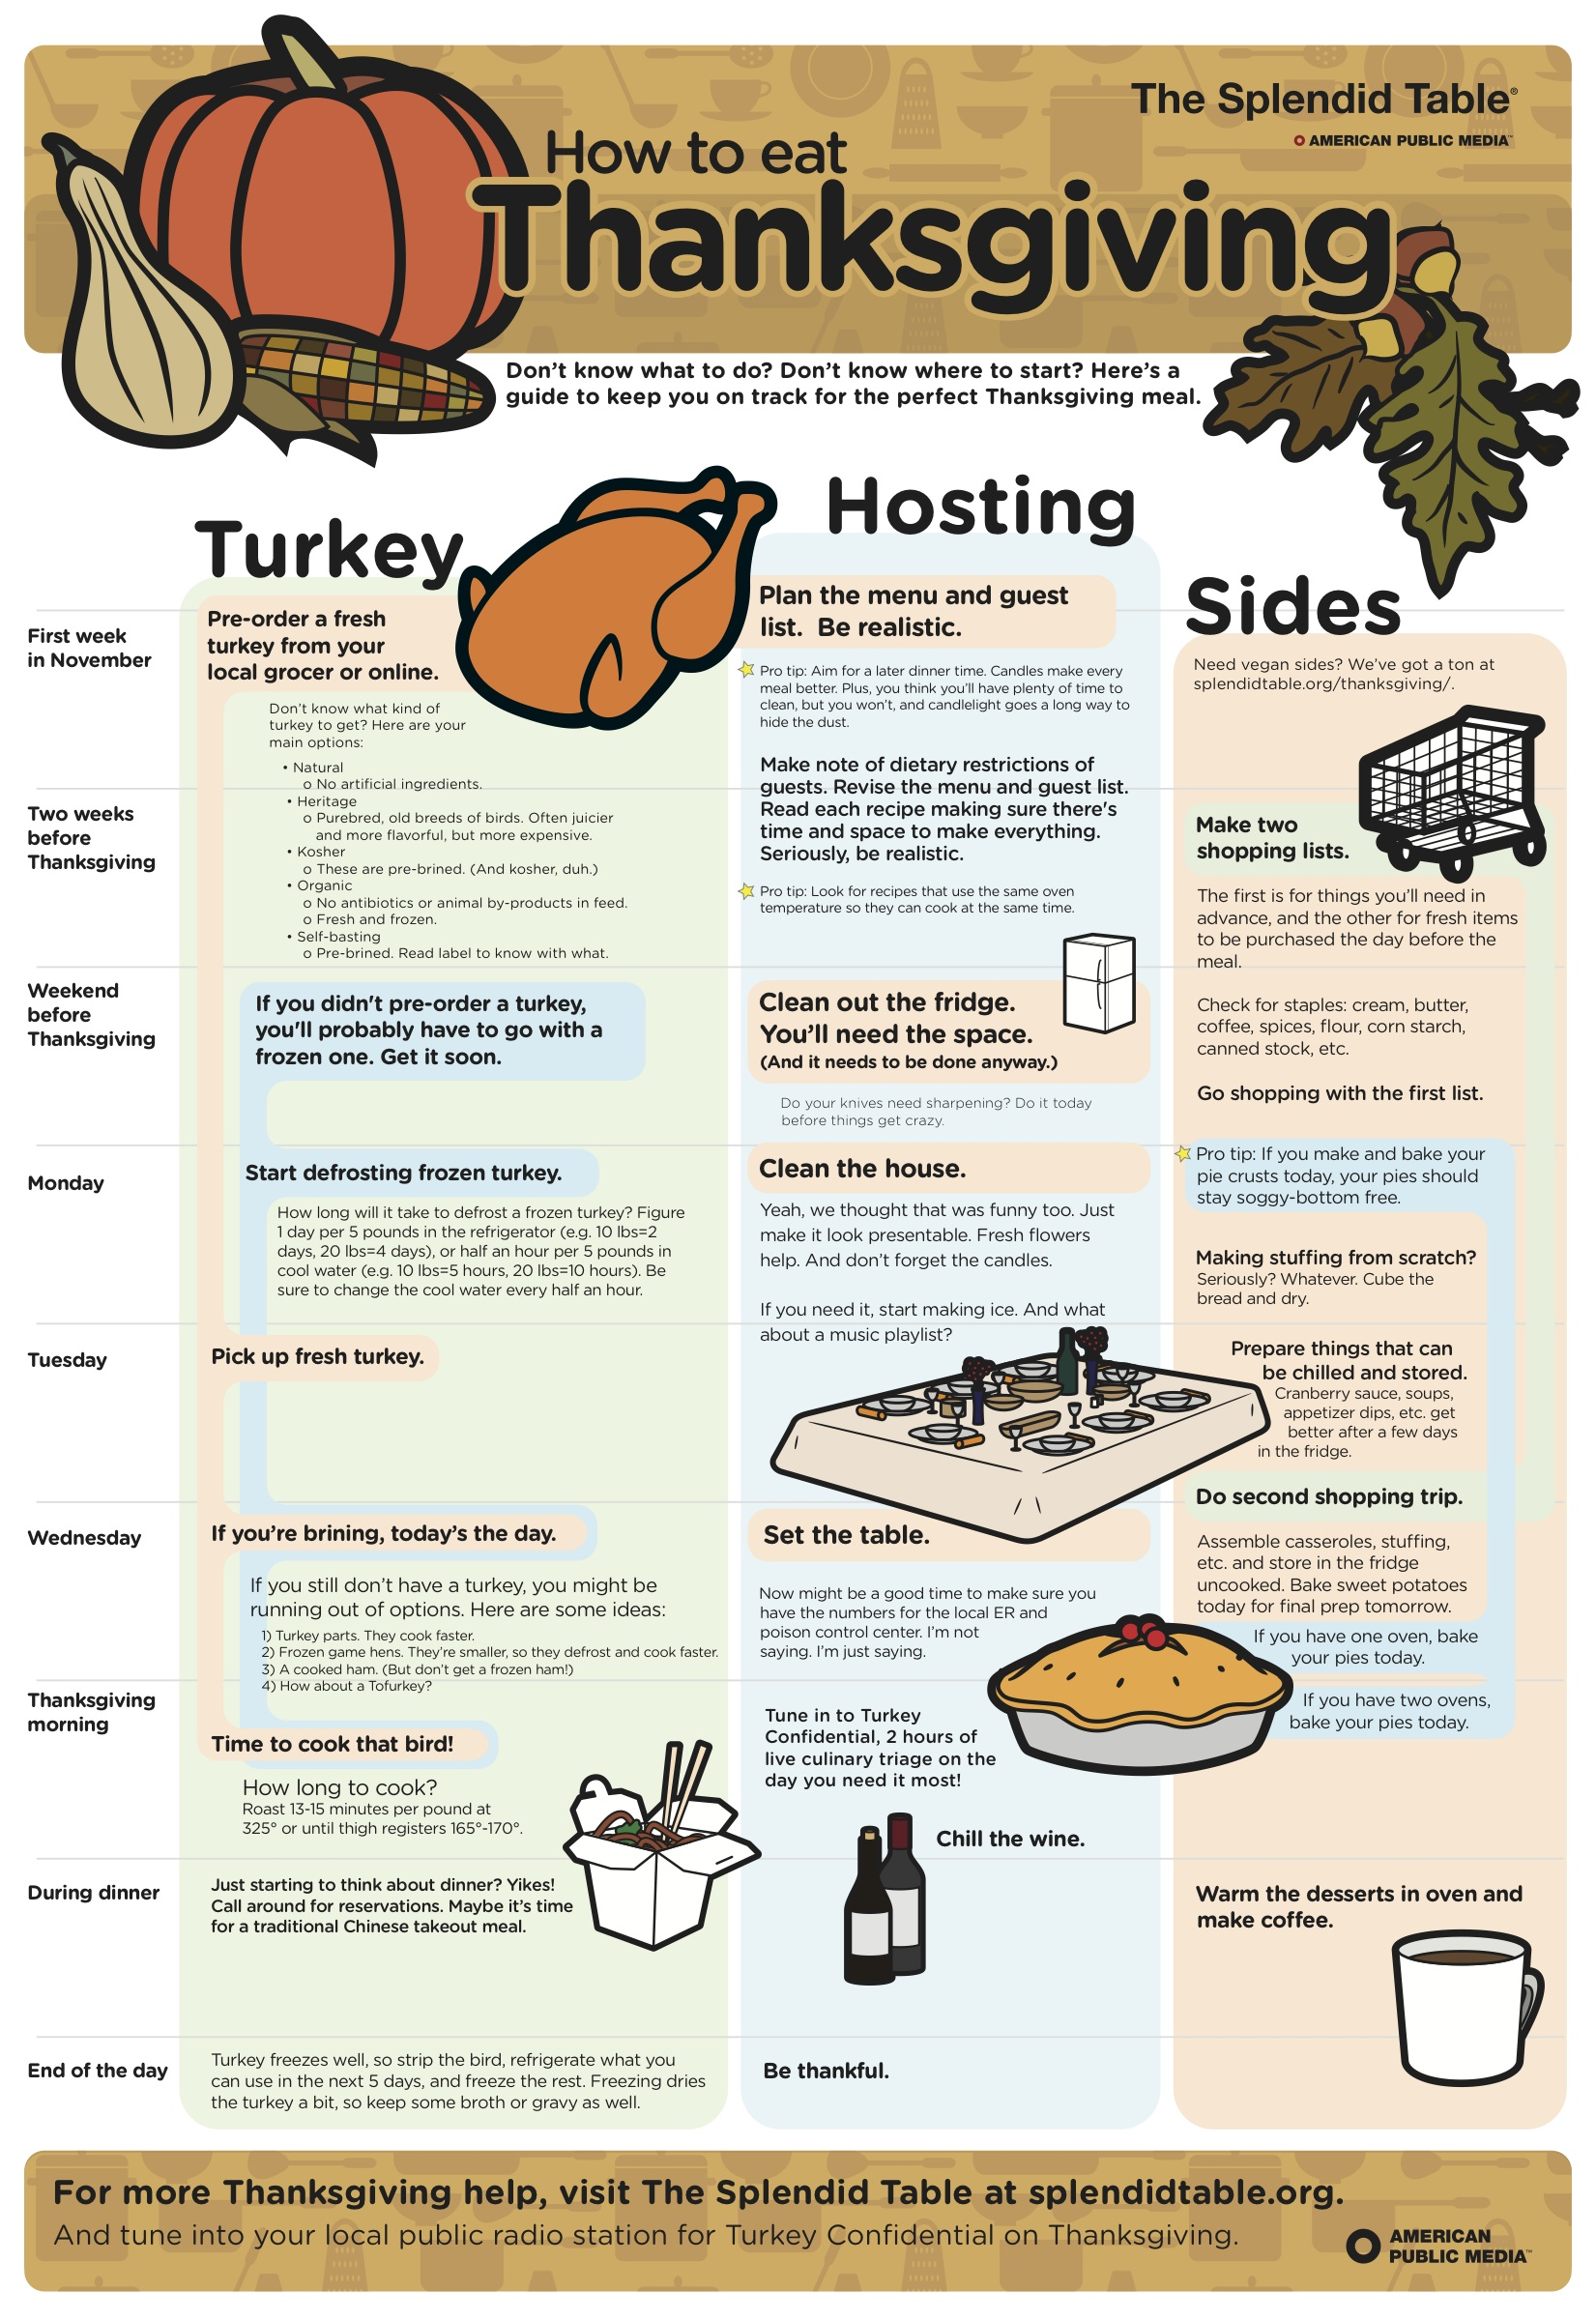 2011-11-18-splendid_table_infographic.jpg